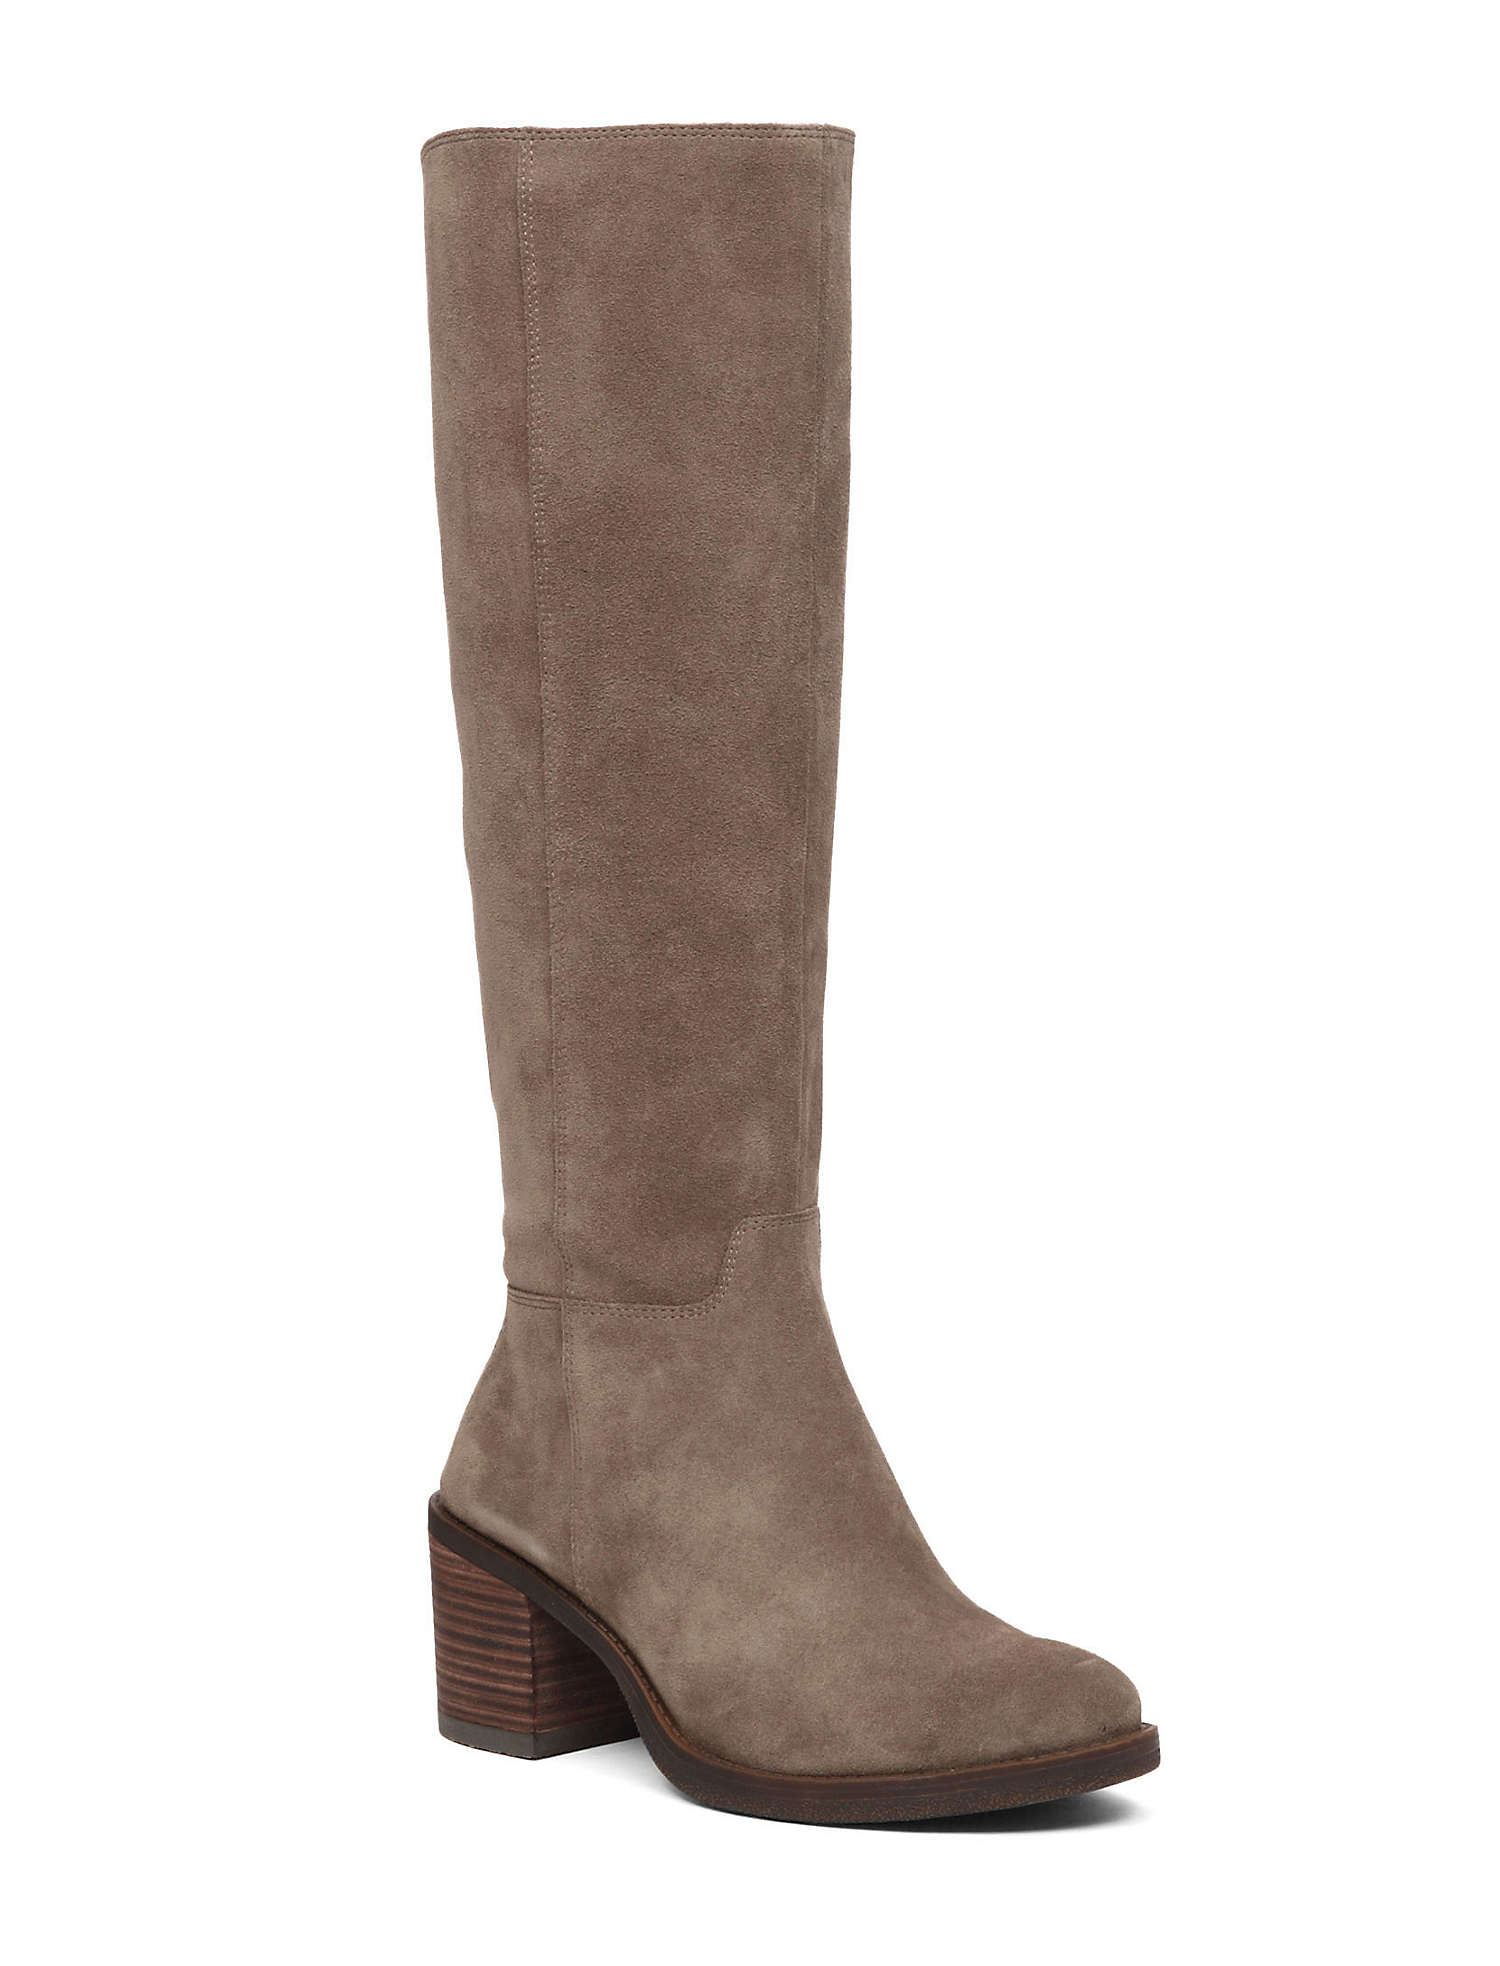 LUCKY BRAND RITTEN BRINDLE TAUPE HEEL SUEDE KNEE HIGH CHUNKY HEEL TAUPE RIDING WESTERN BOOT 21a197